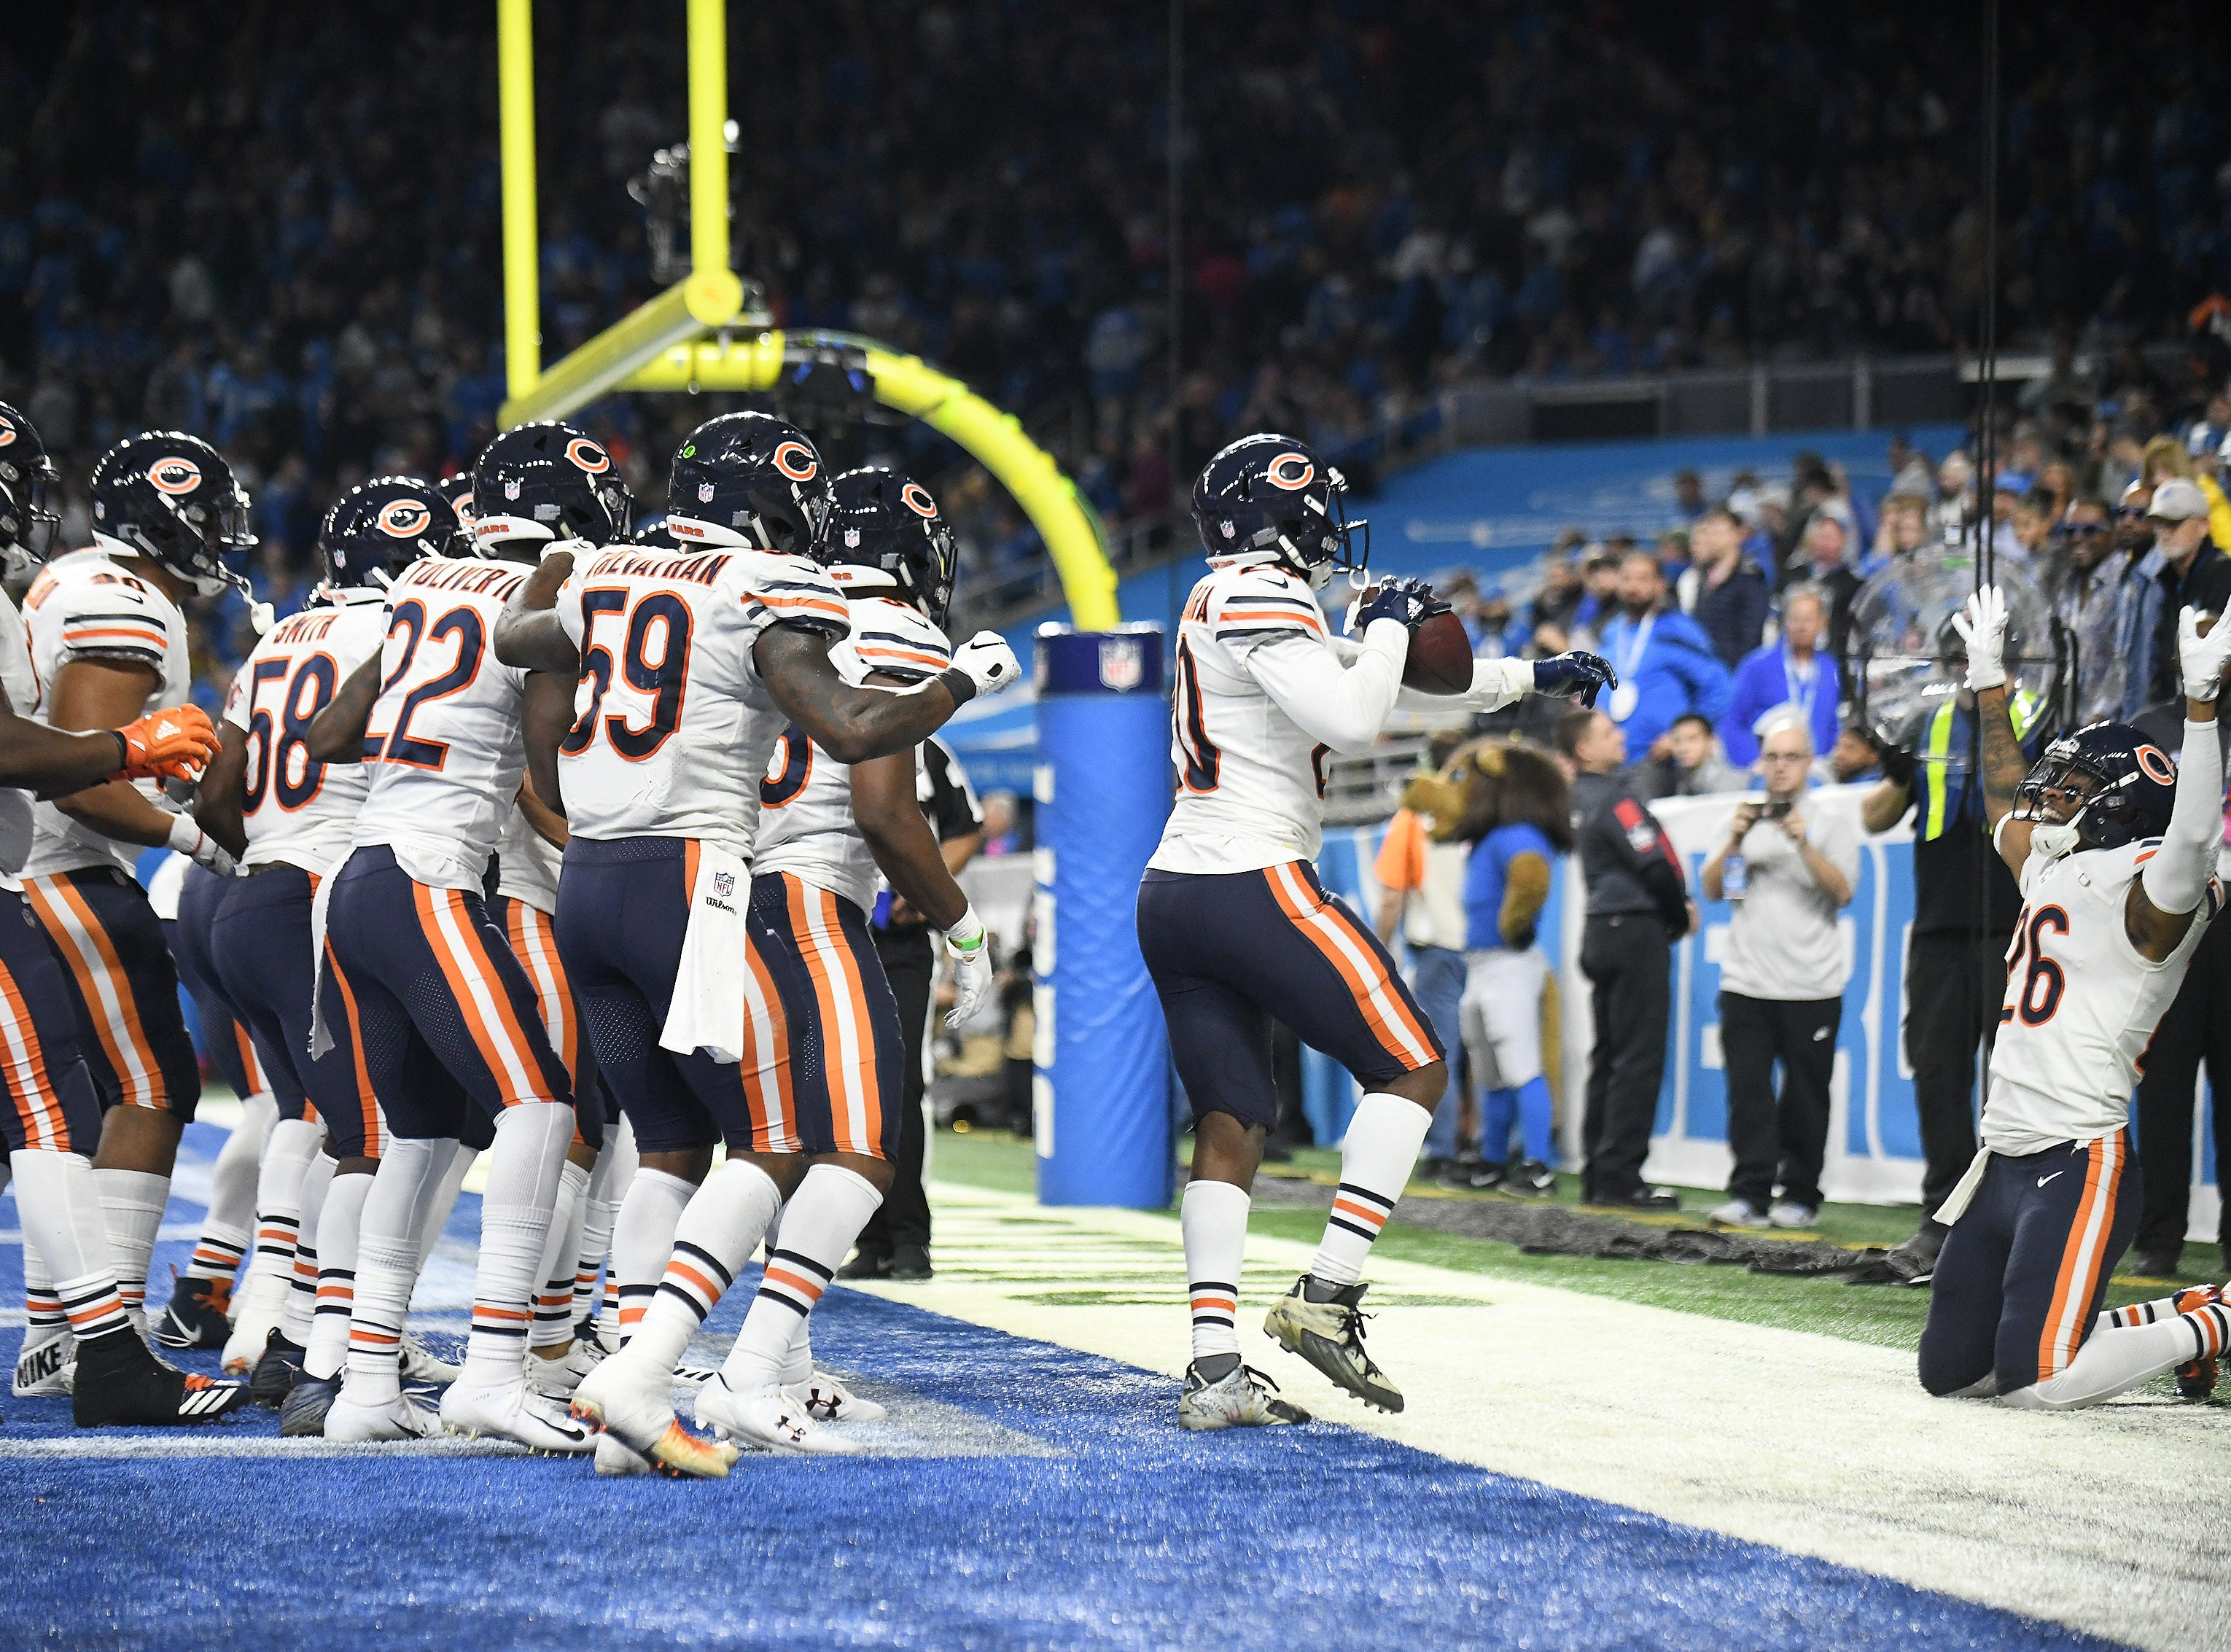 Chicago Bears do a group celebration after Kyle Fuller made an interception in the Lions end zone In the fourth quarter.  Detroit Lions vs Chicago Bears on Thanksgiving Day at Ford Field in Detroit on Nov. 22, 2018.  Bears win, 23-16.